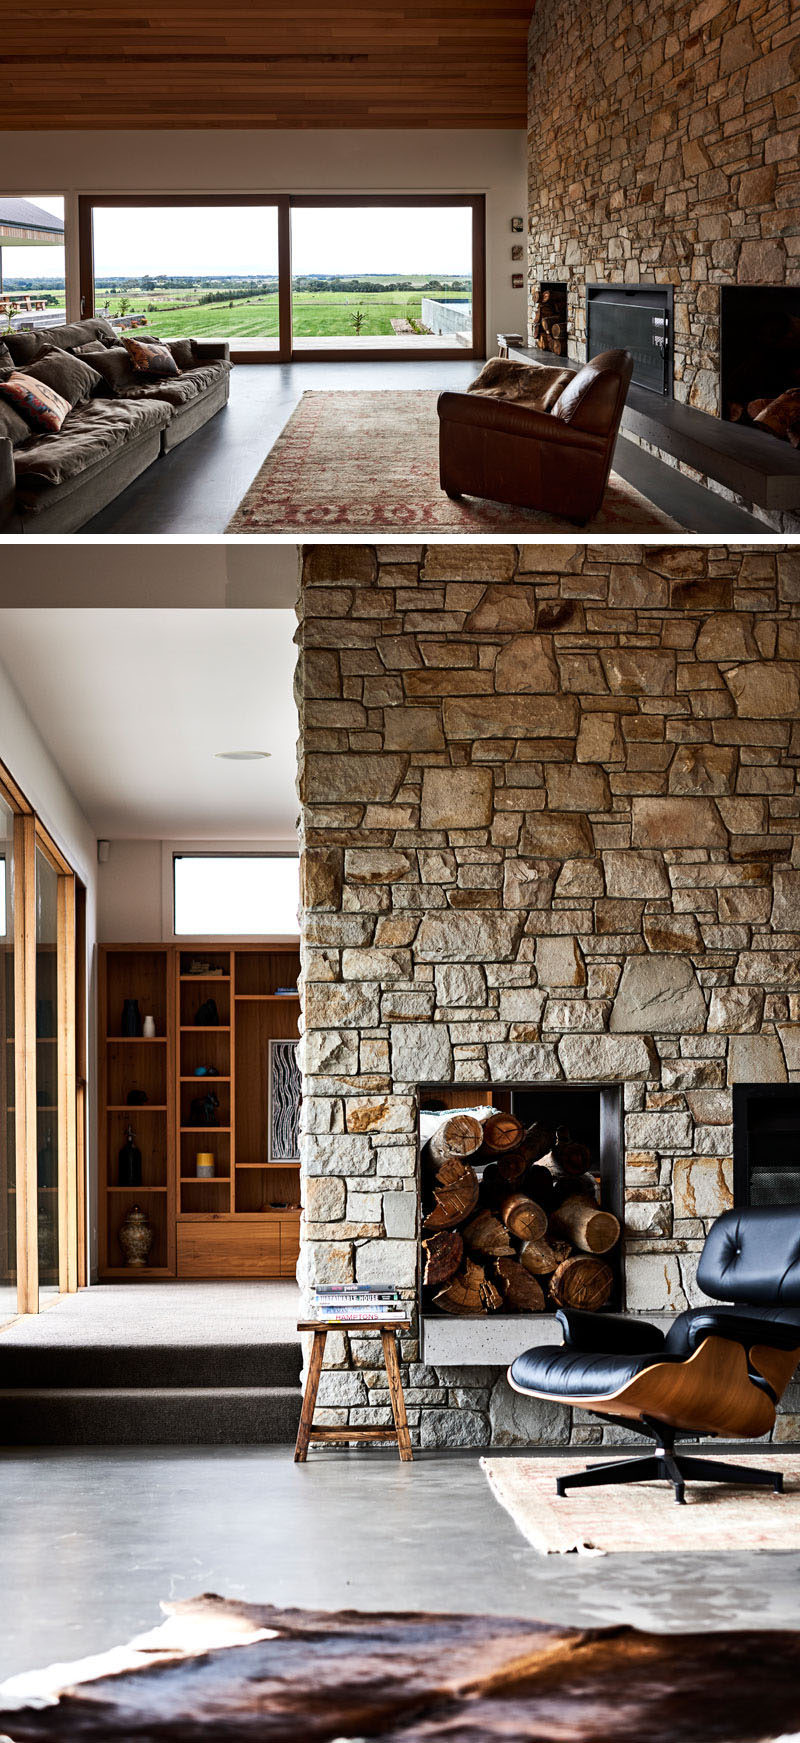 This Rural Home Combines Rustic Interior Elements With